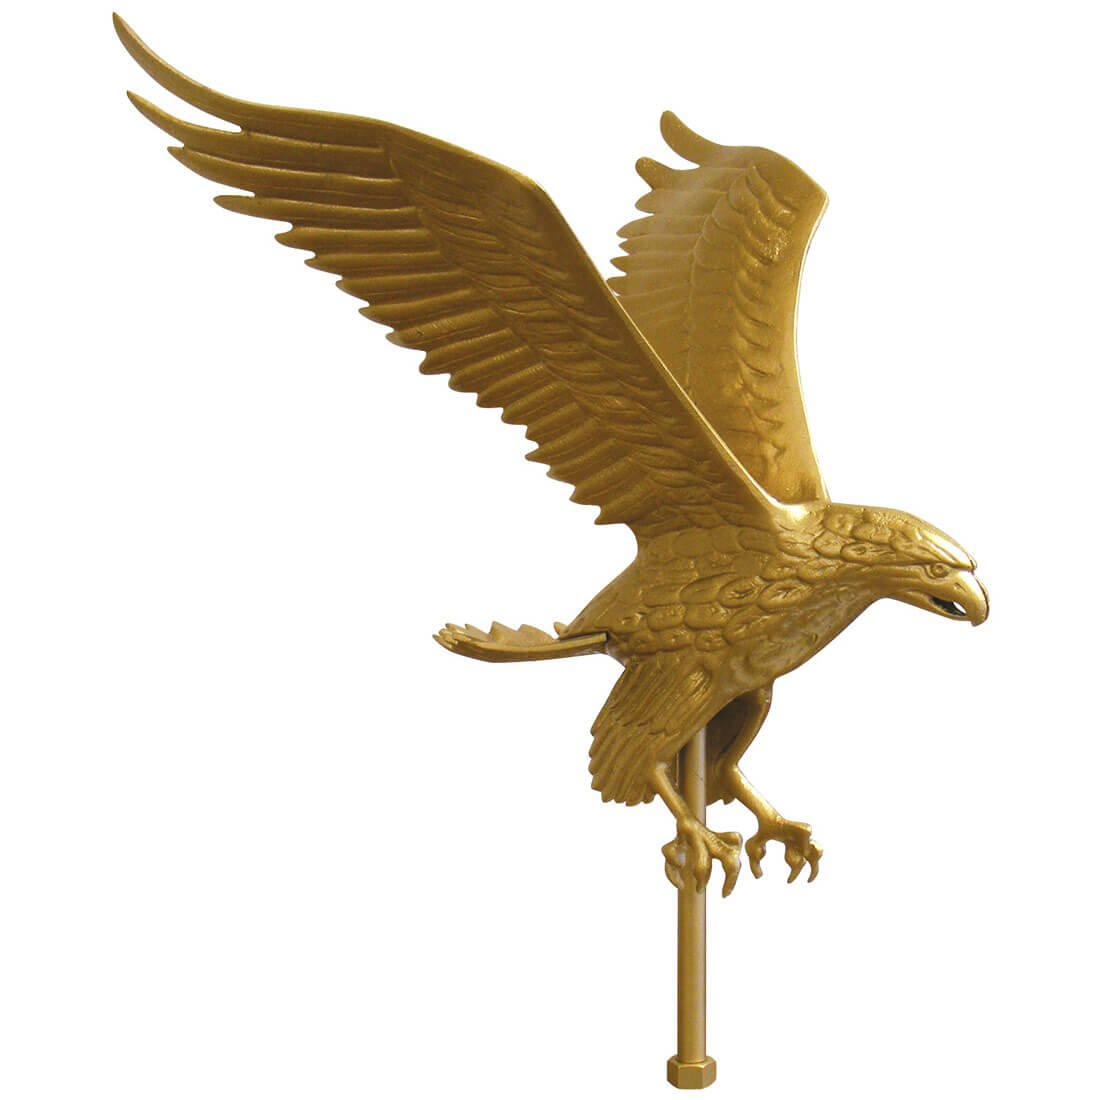 Gold Eagle Flagpole Ornament 12 in x 9-1/4 in aluminum (12 in.) by FlagandBanner (Image #1)